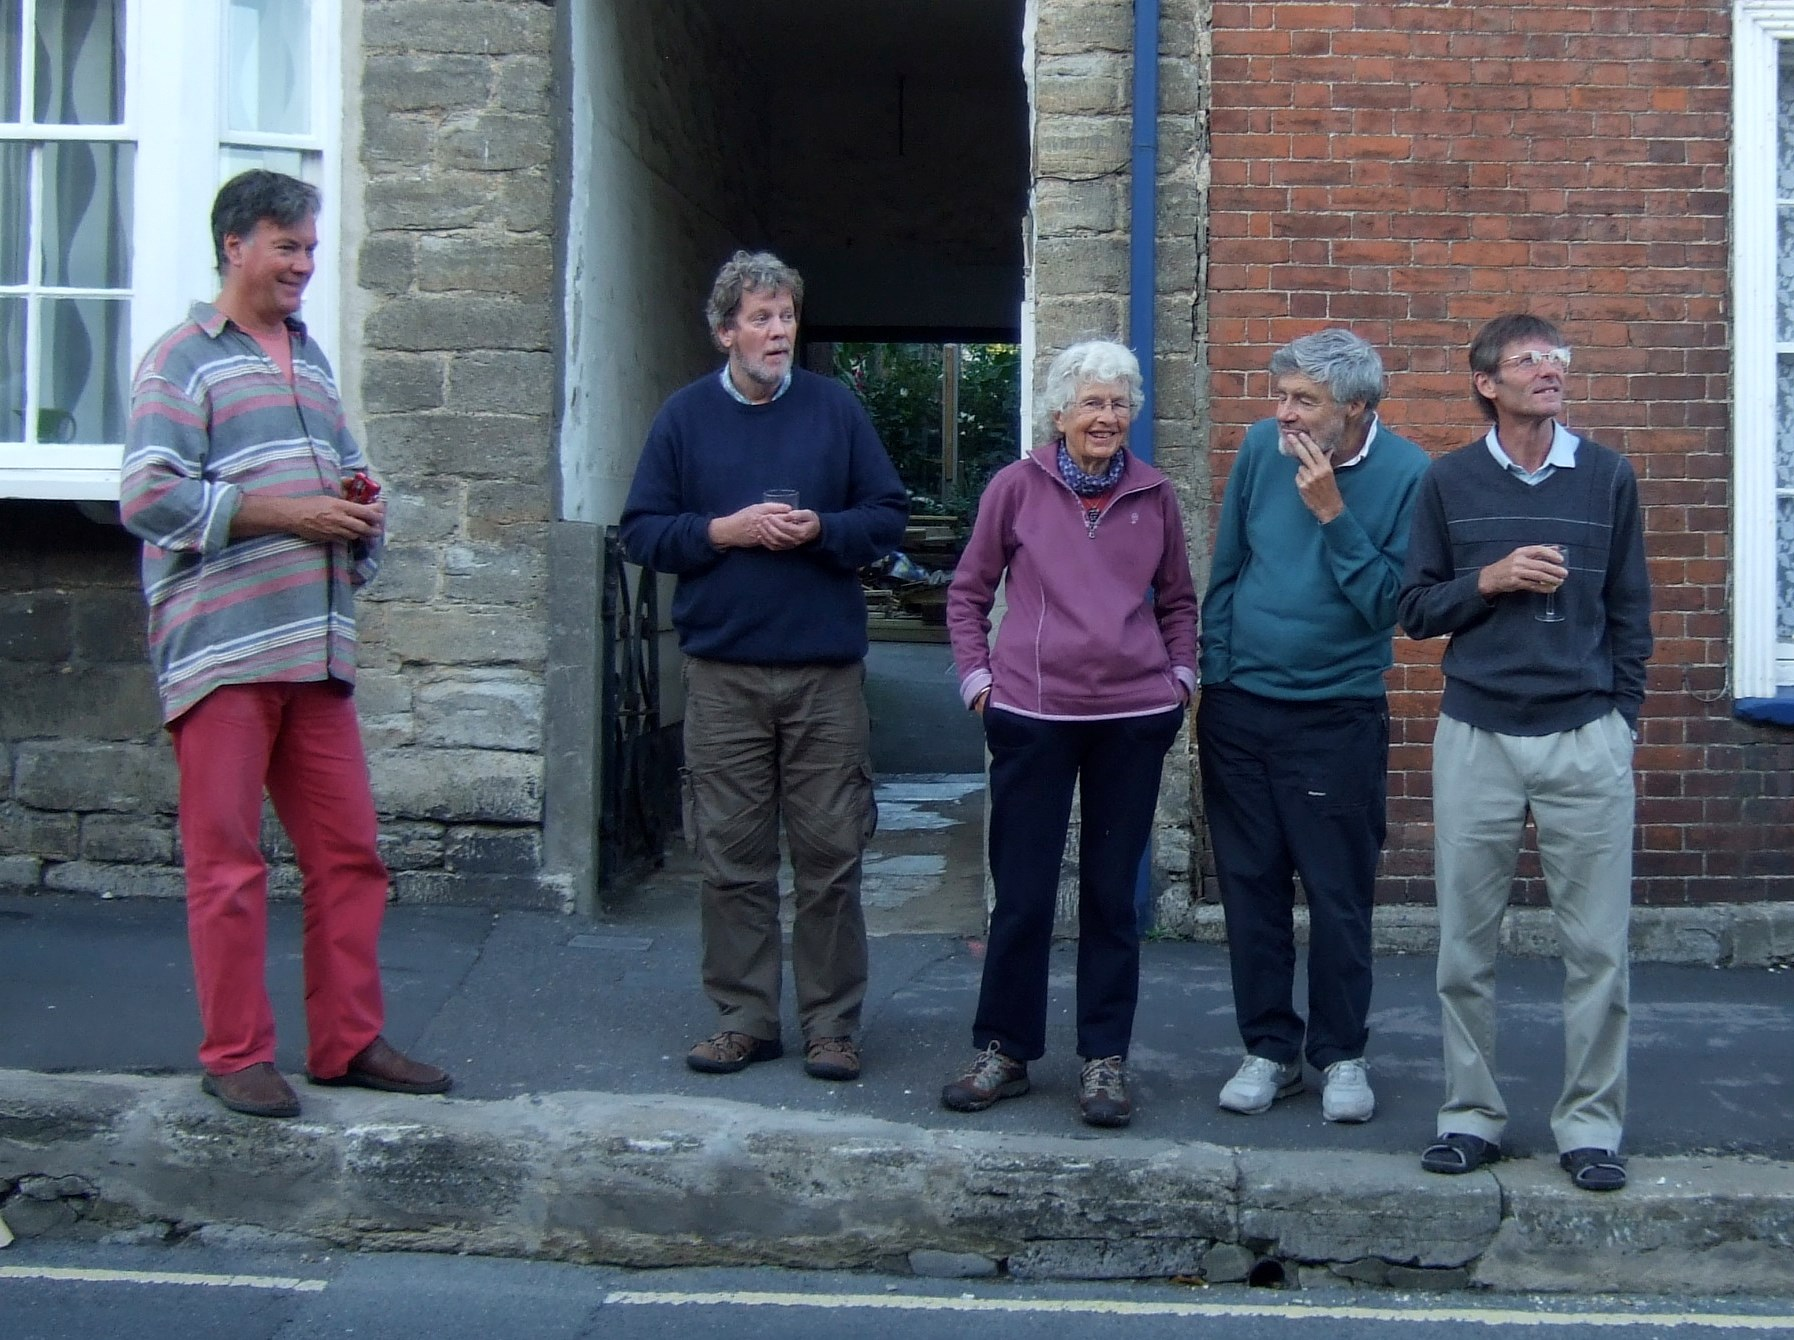 Jane with friends outside her Bridport home